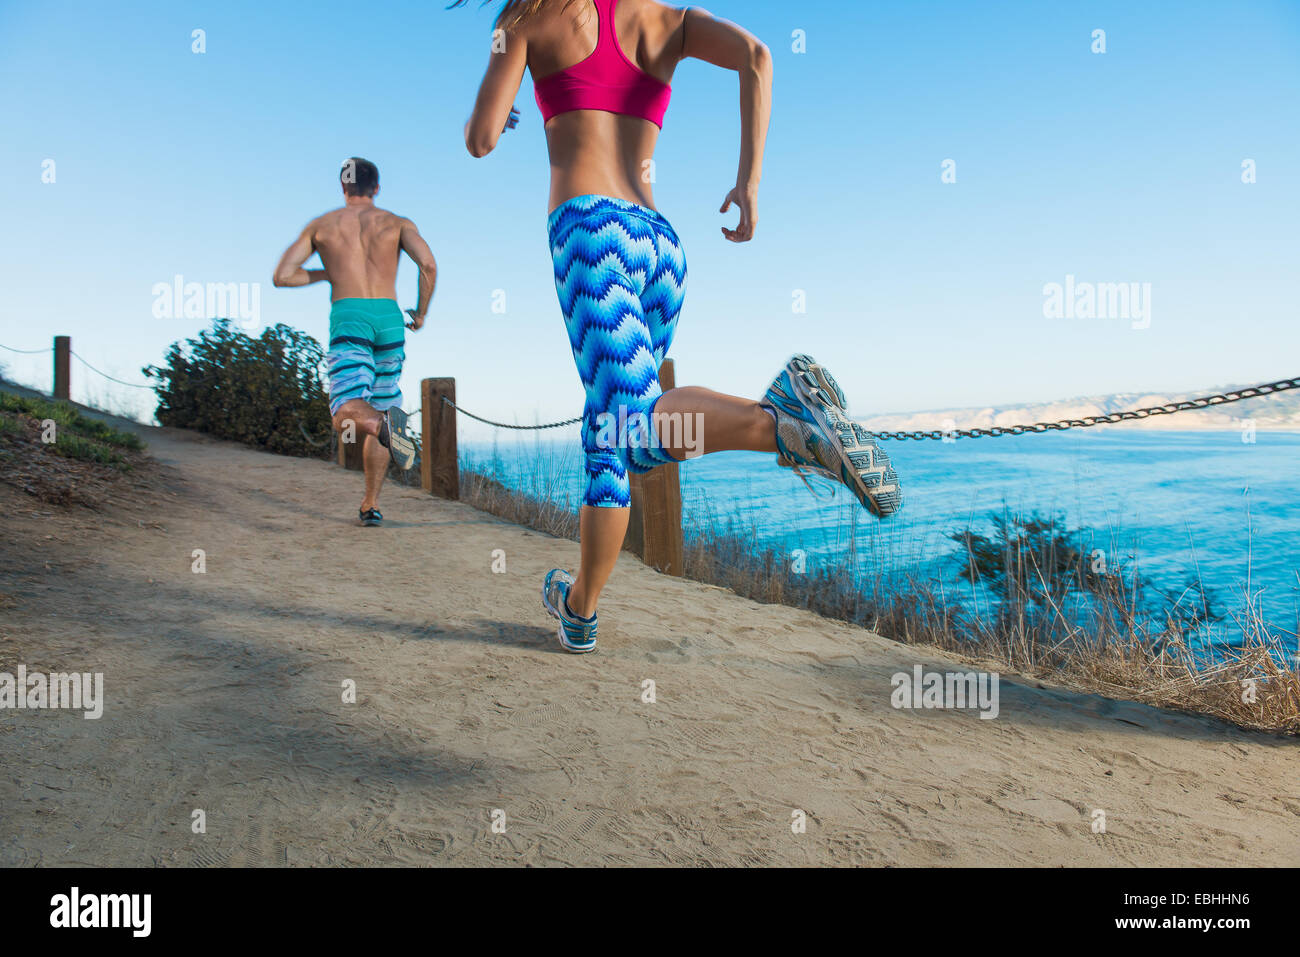 Mid adult man and young woman running on path by sea, rear view Stock Photo